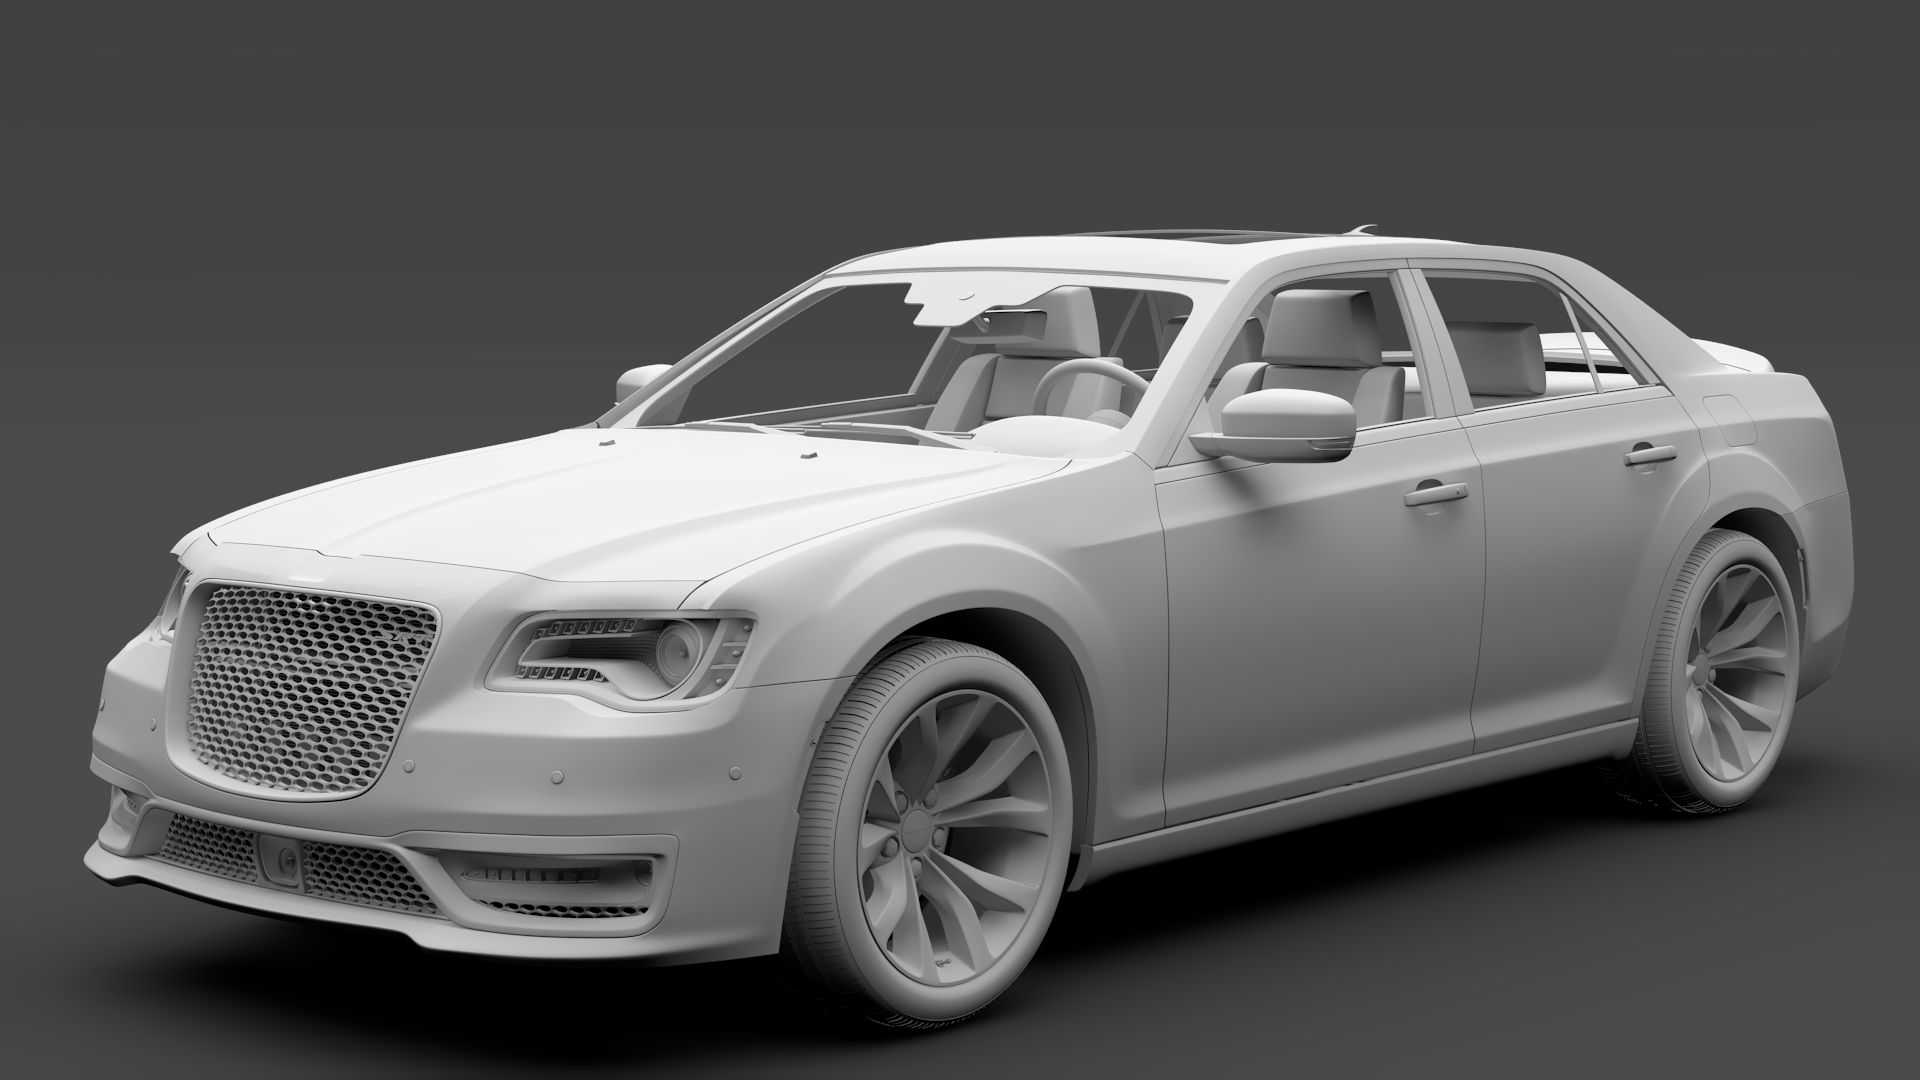 chrysler 300 srt lx2 2018 3d model 3ds max fbx c4d lwo ma mb hrc xsi obj 286107